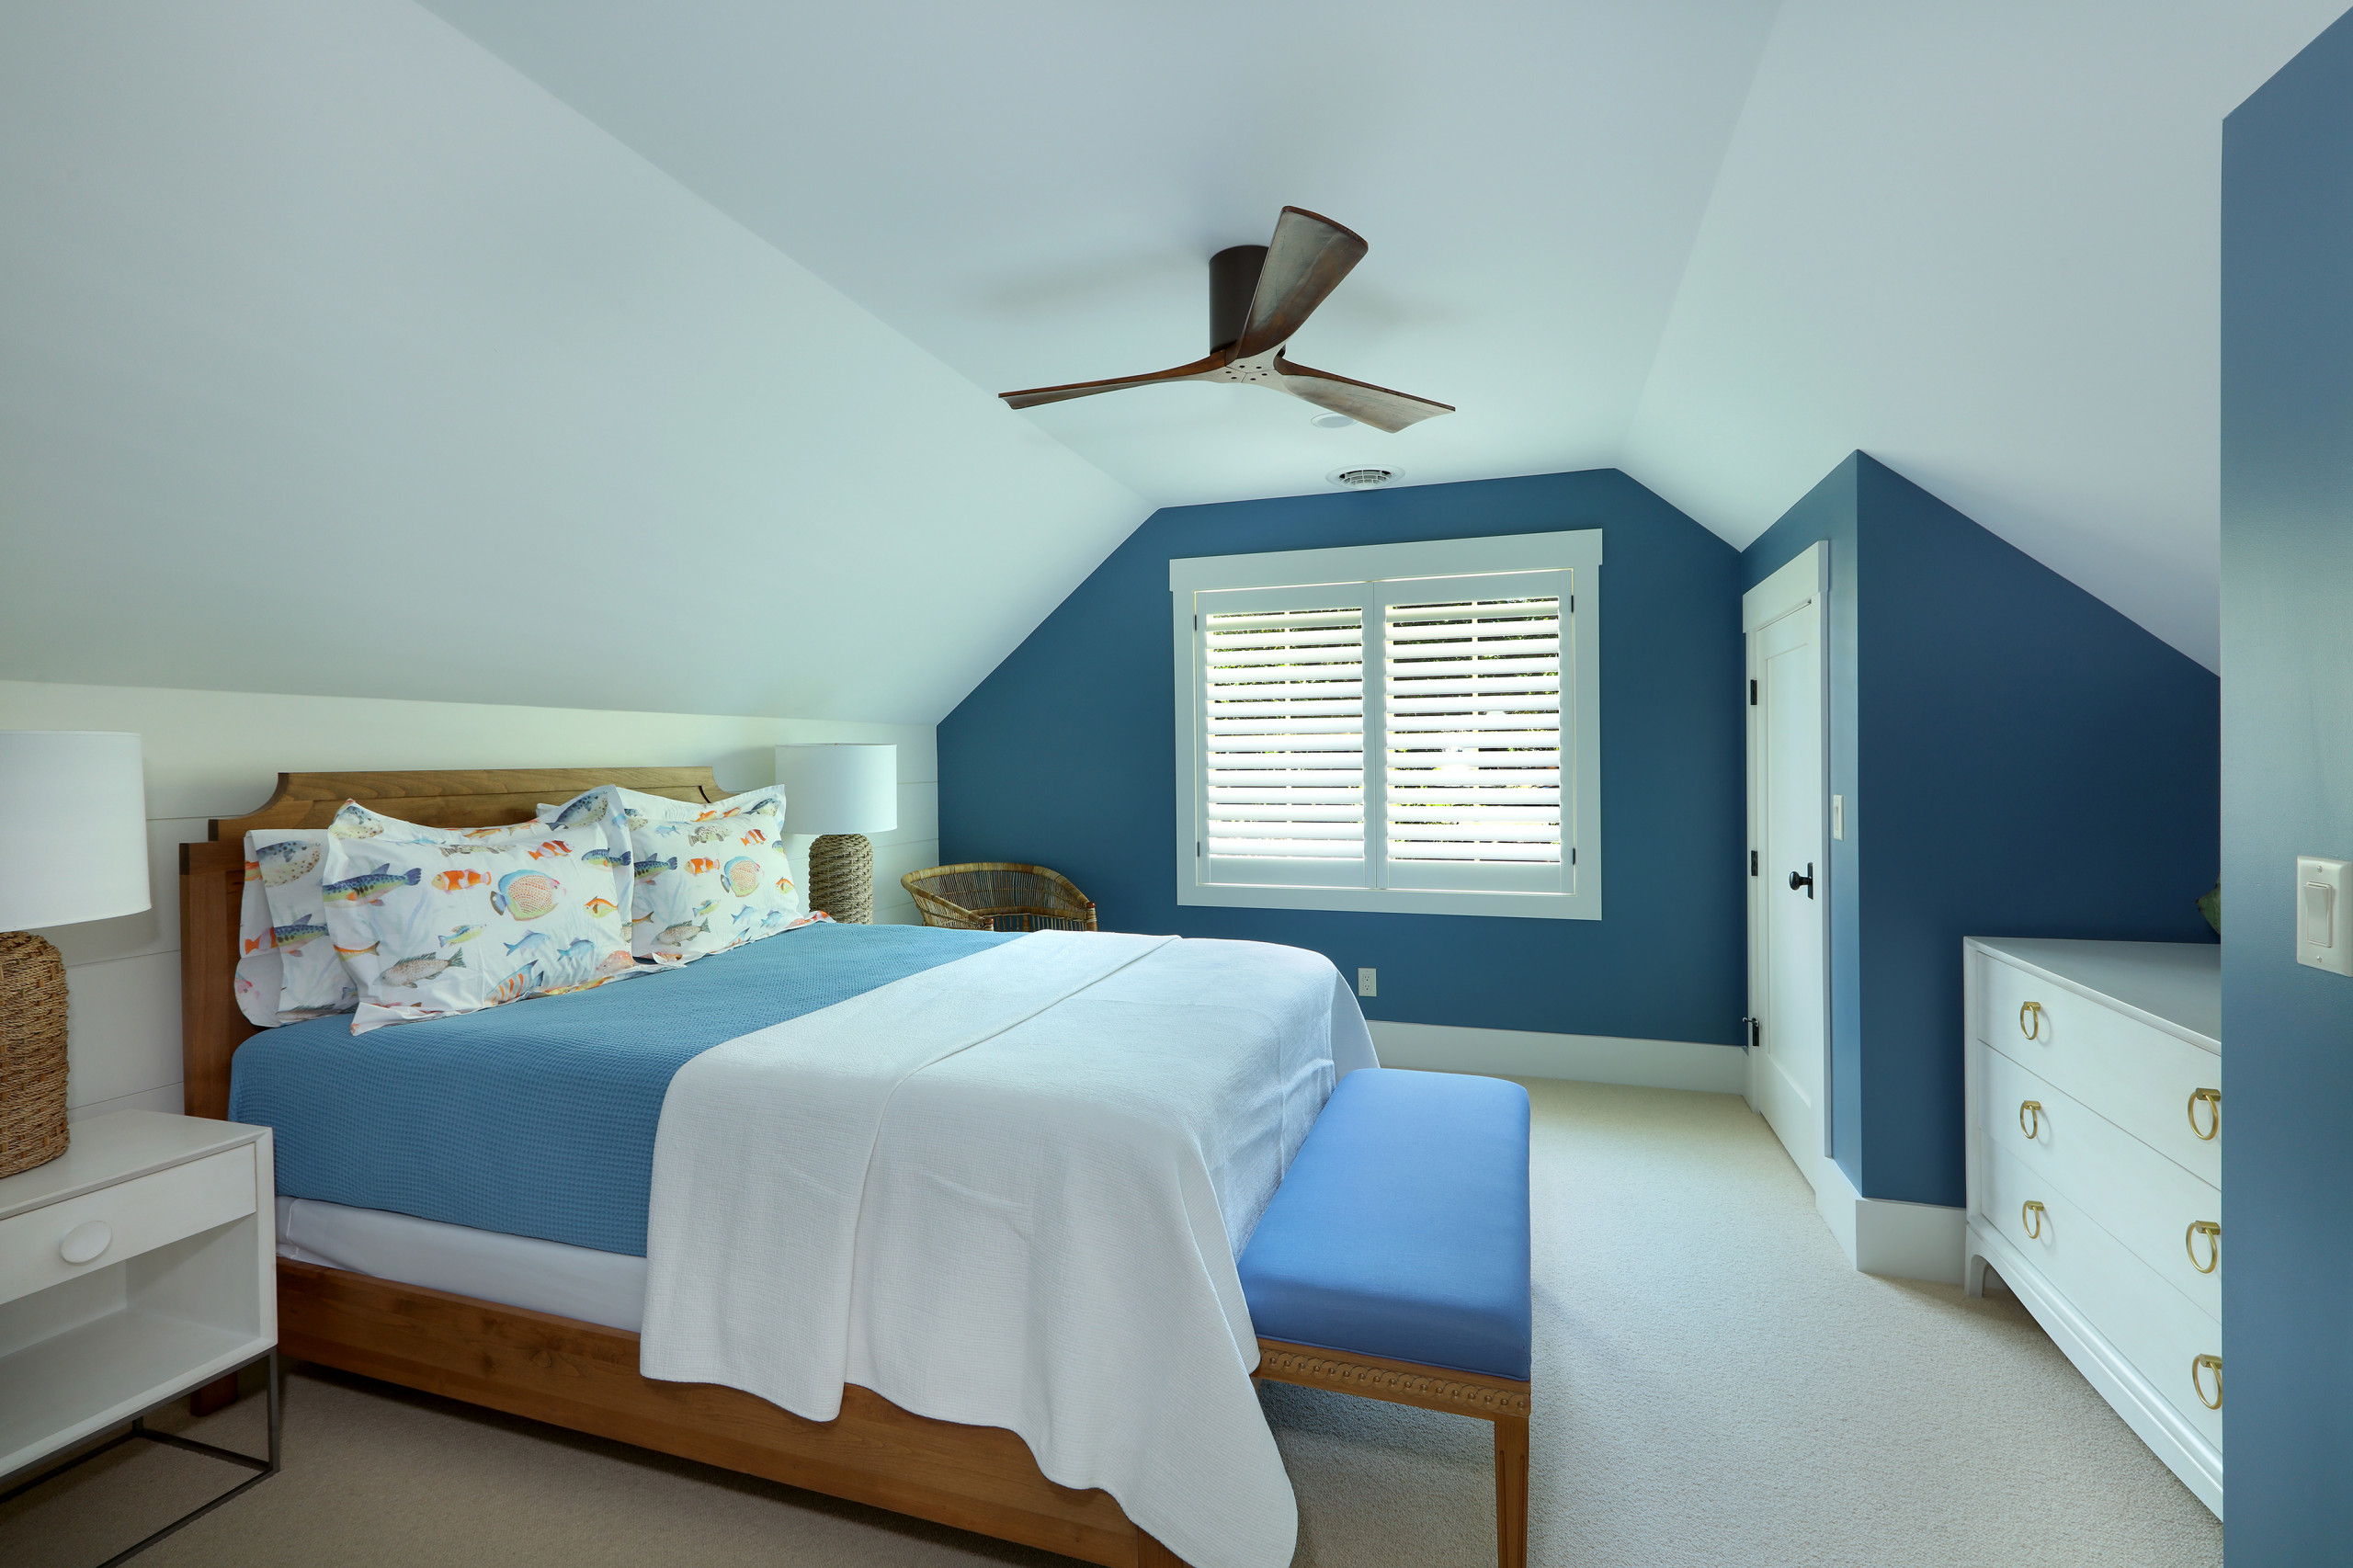 999 Beautiful Turquoise Bedroom Pictures Ideas November 2020 Houzz